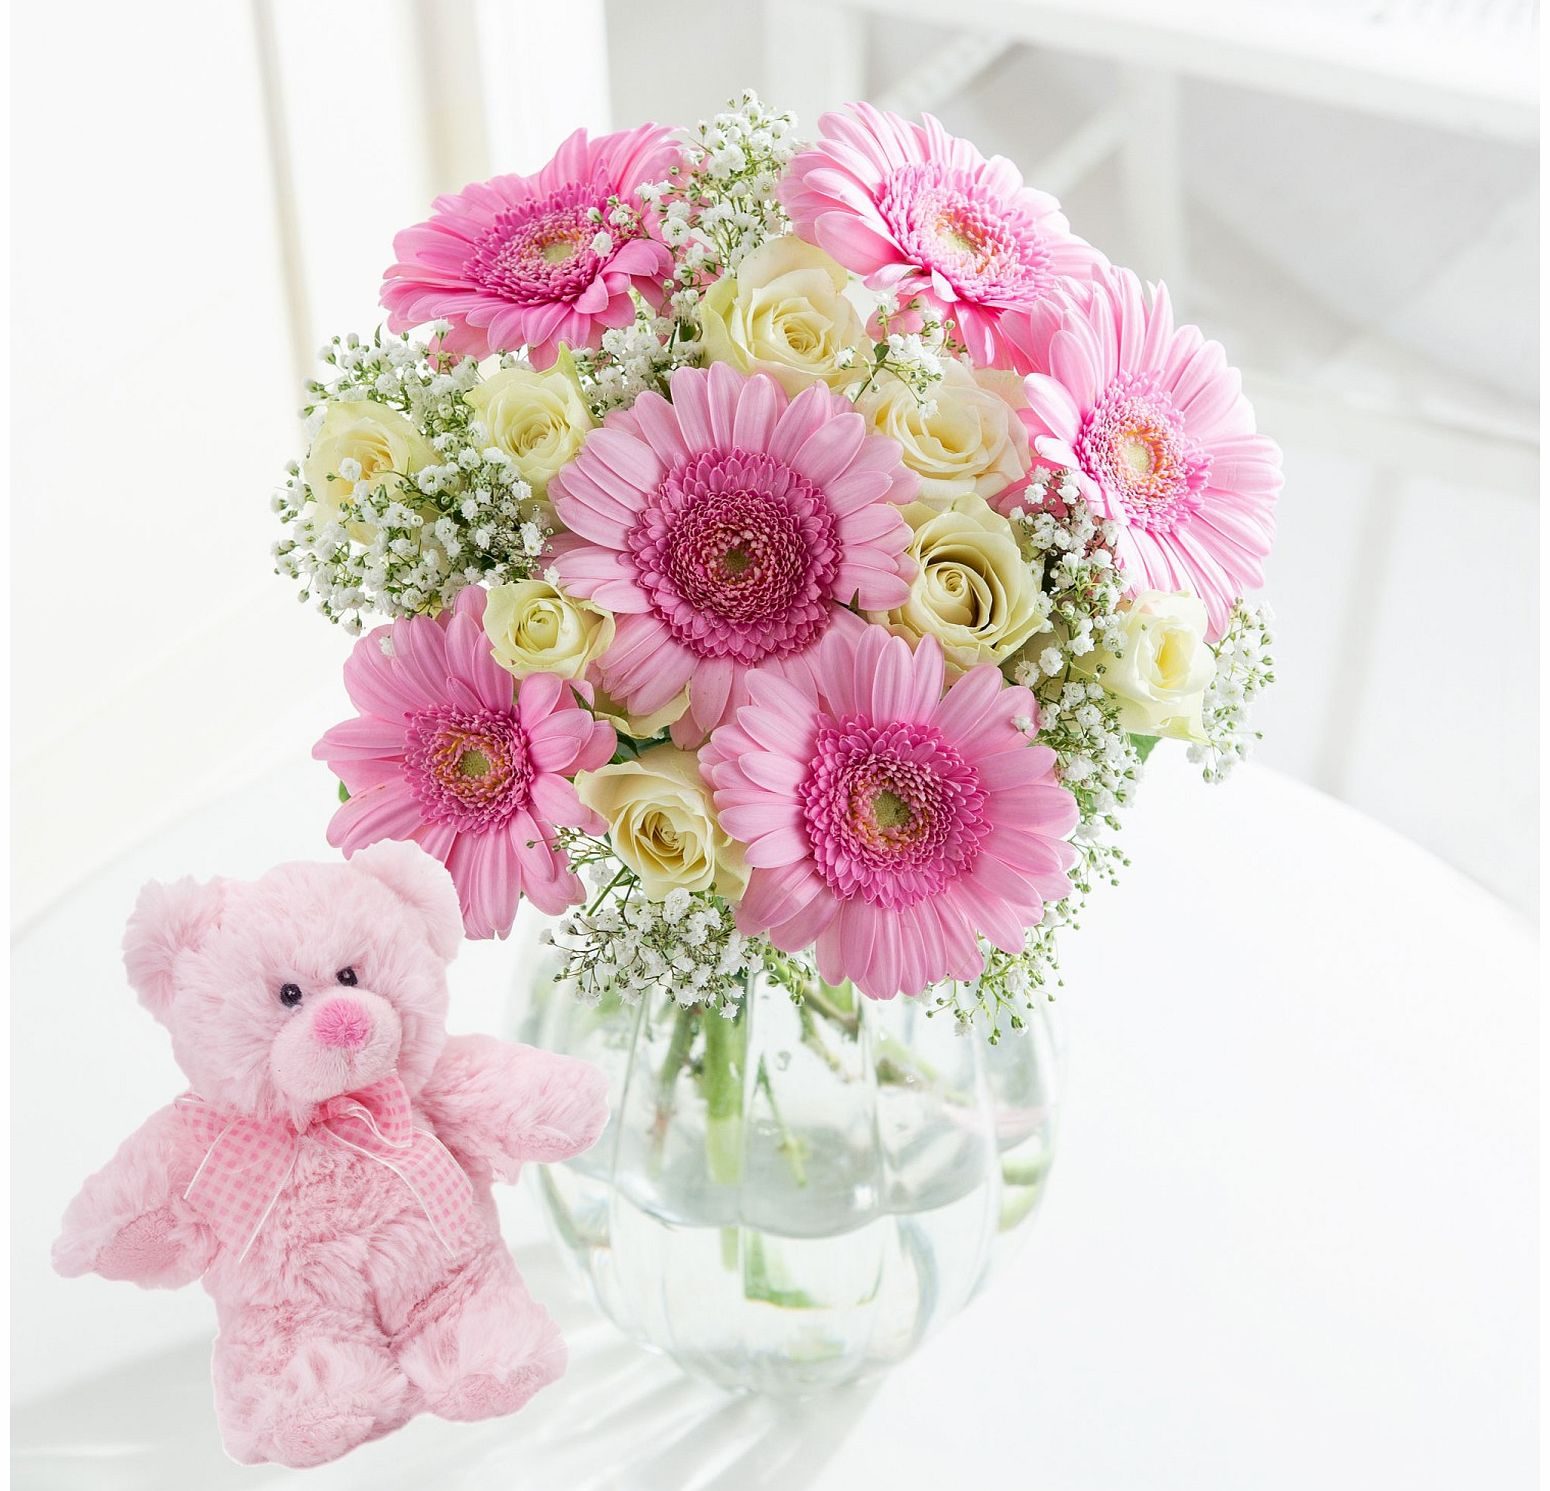 Baby flowers and flower delivery